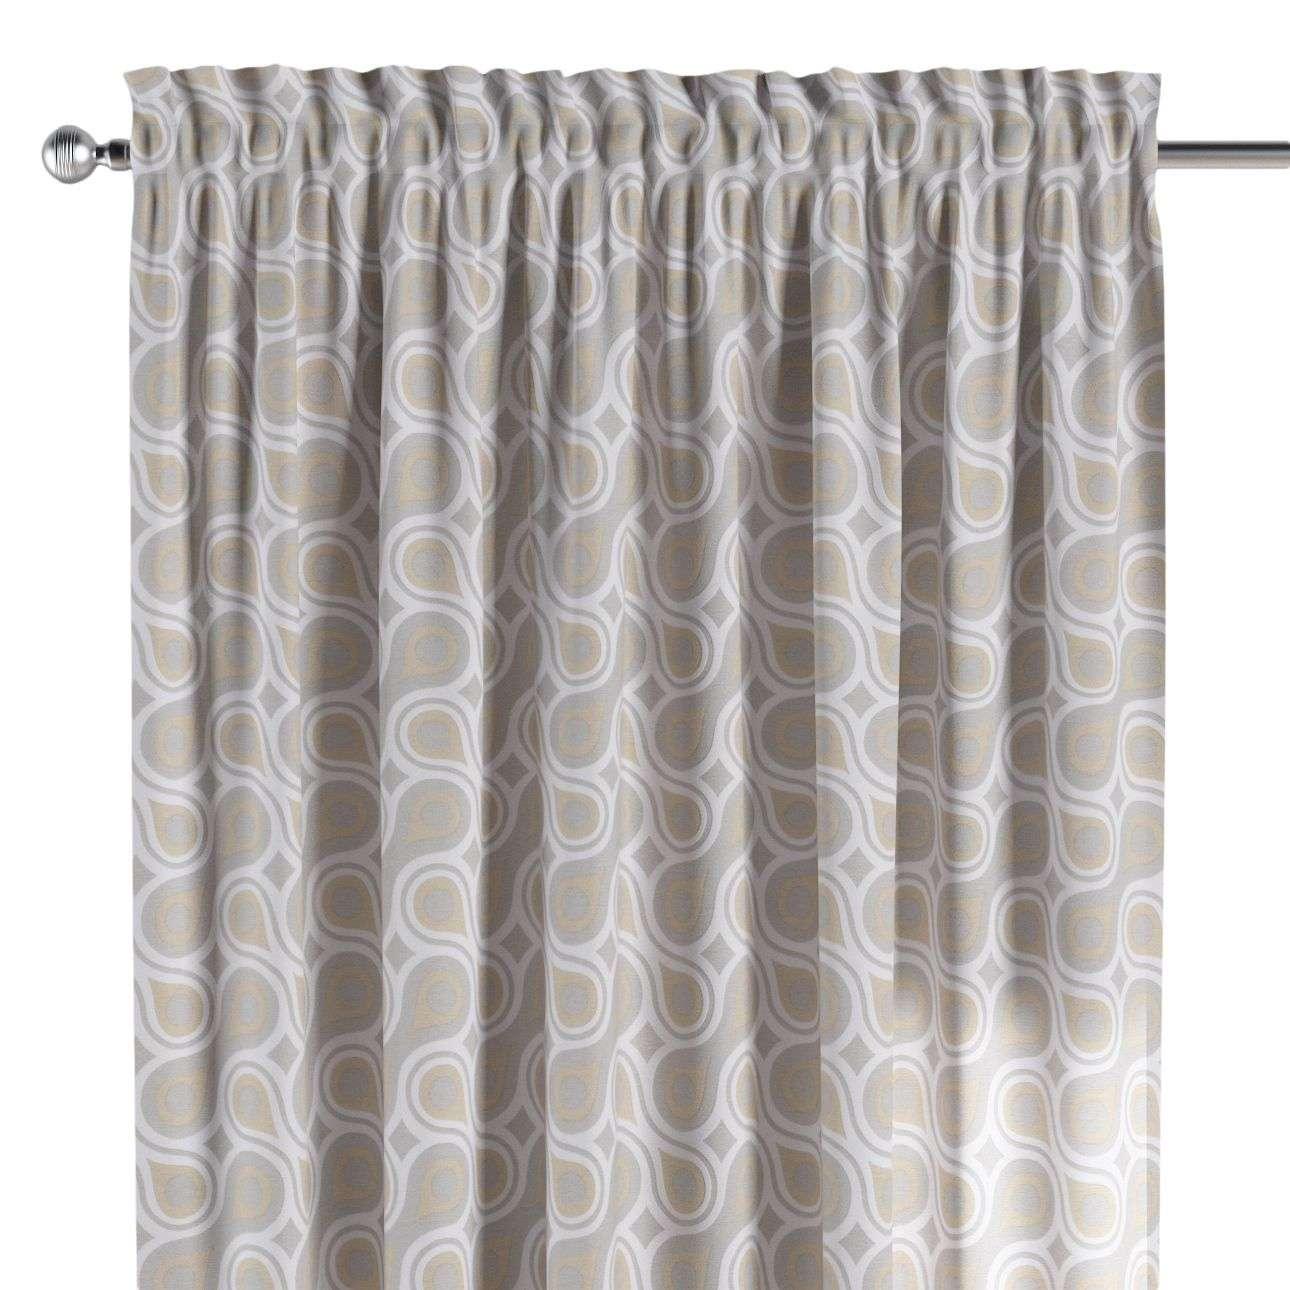 Slot and frill curtains in collection Flowers, fabric: 311-11